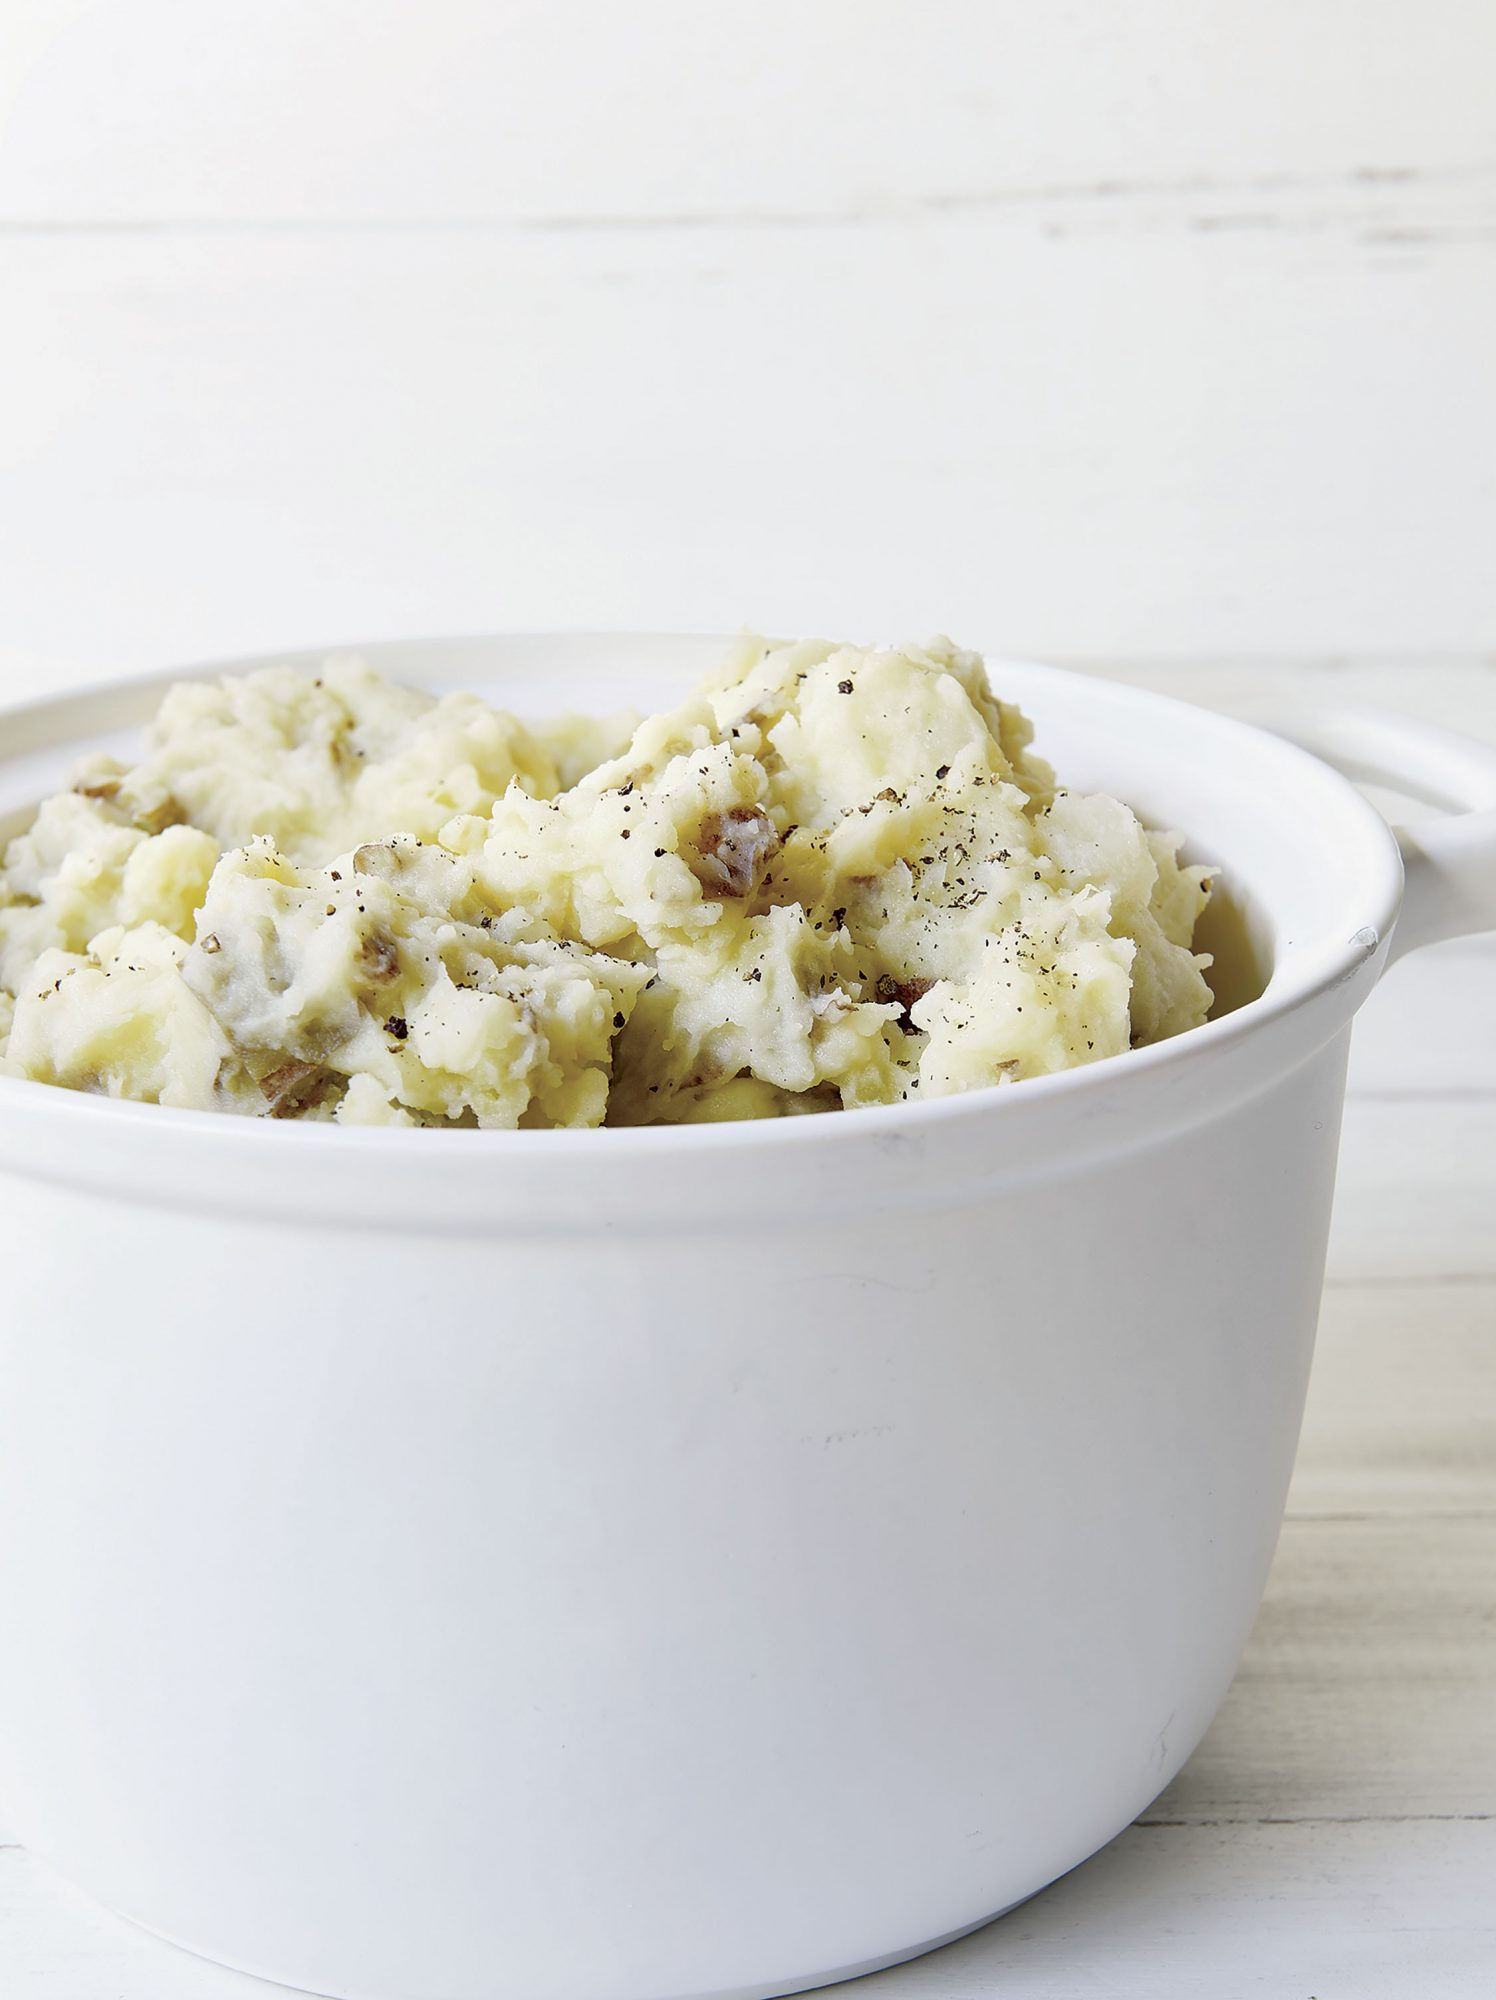 Joanna Gaines' Mashed Potatoes Recipe